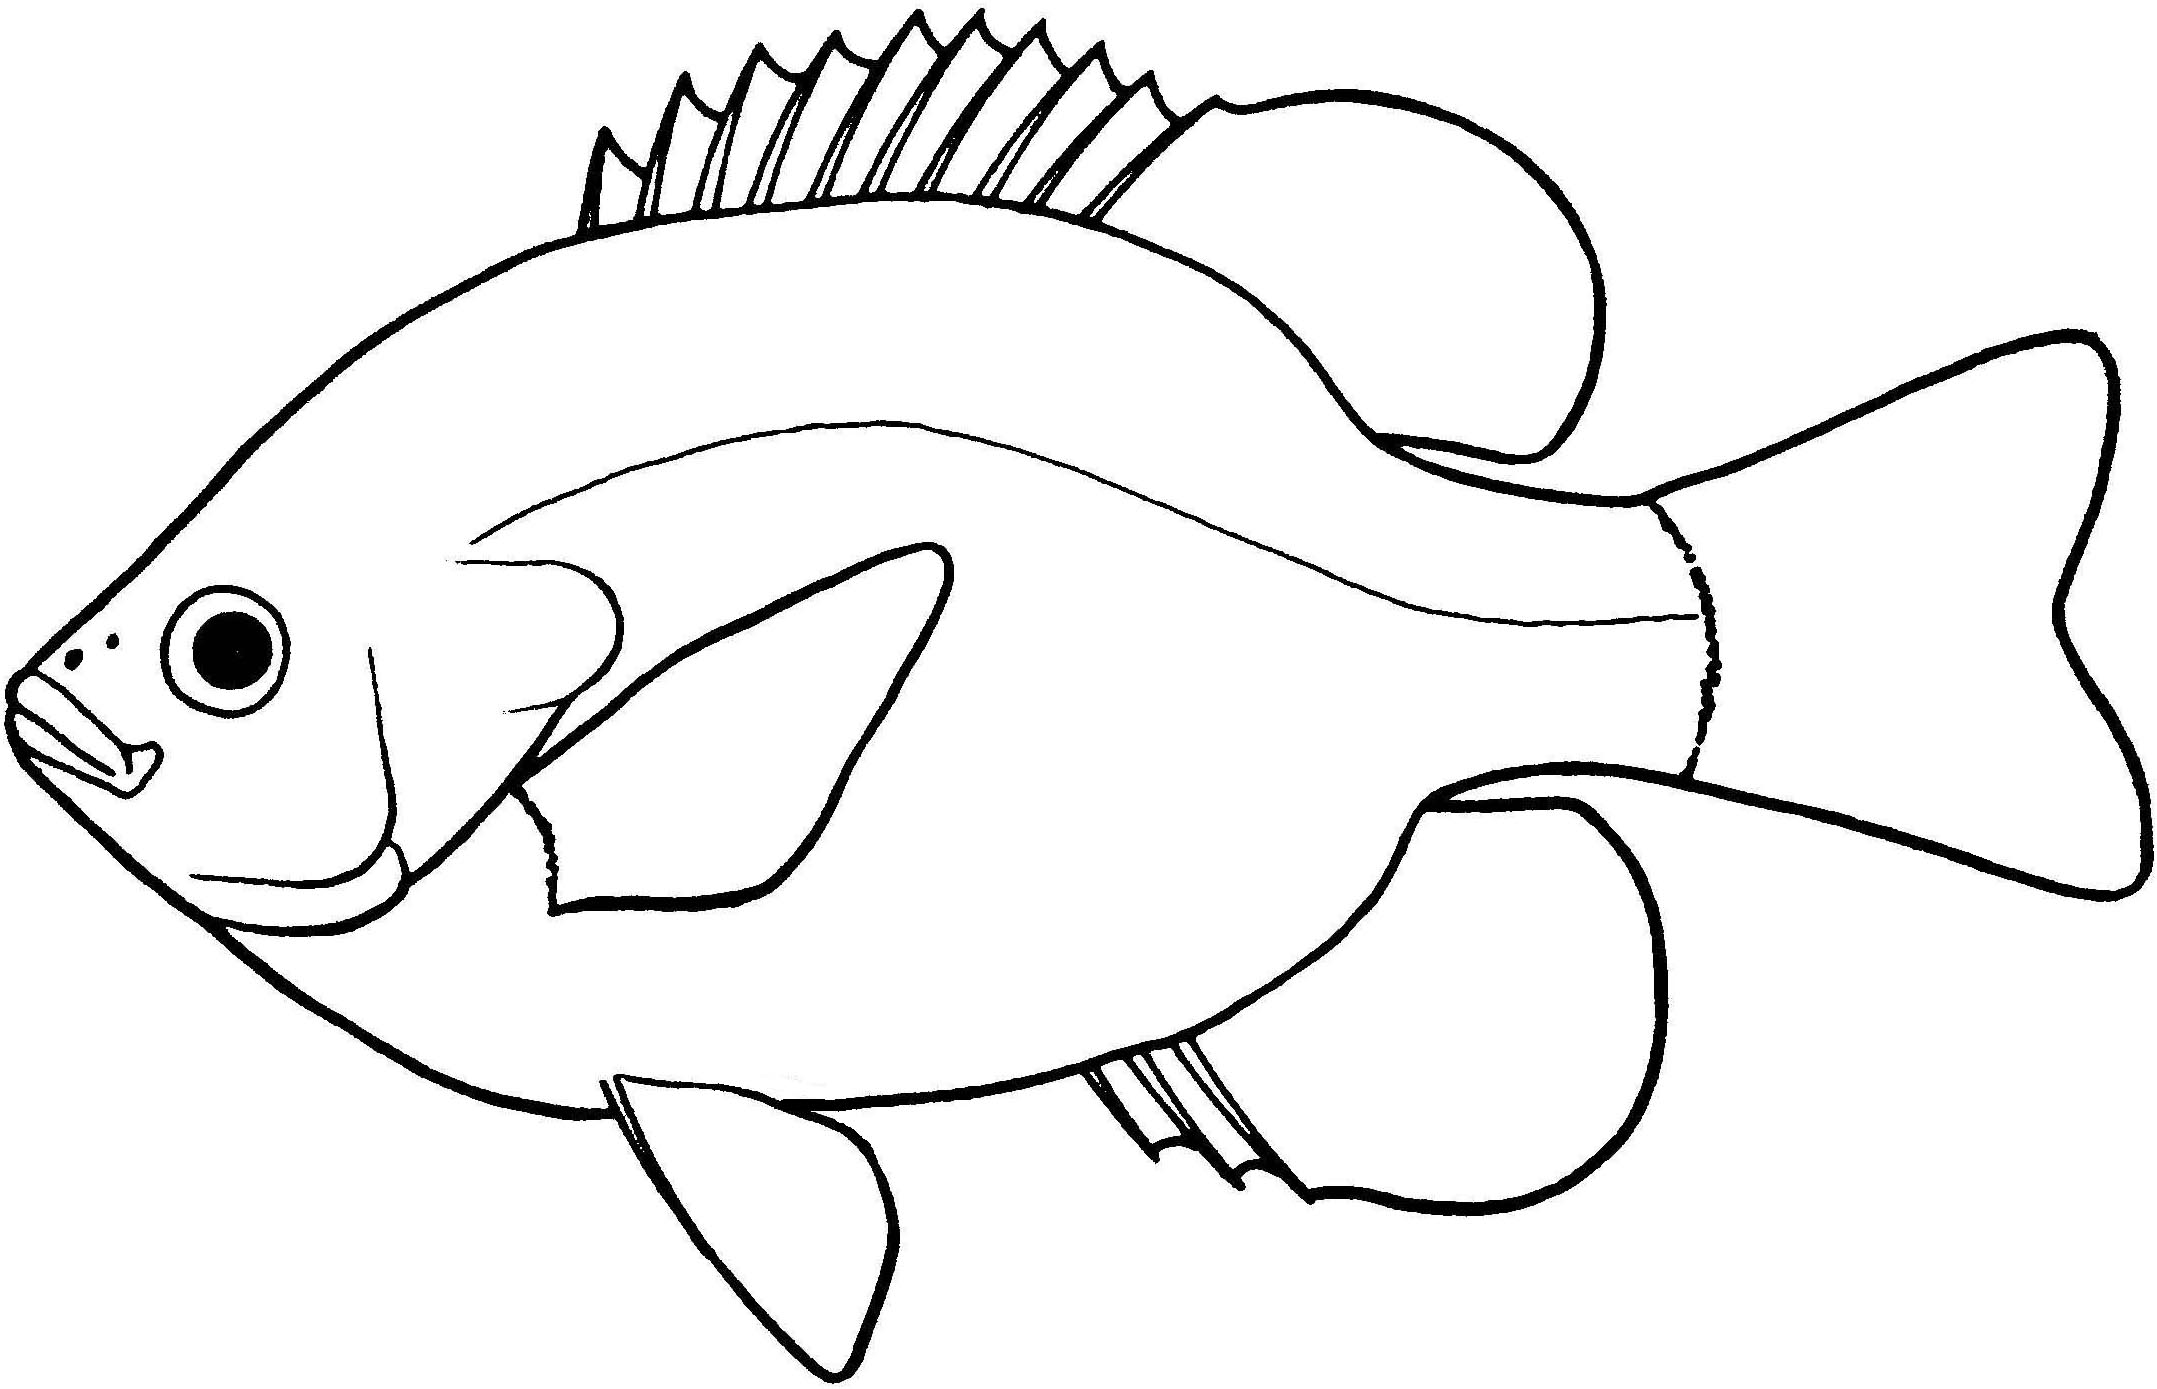 Ichthyology clipart graphic library library Fish black and white fish clipart black and white fresh water ... graphic library library